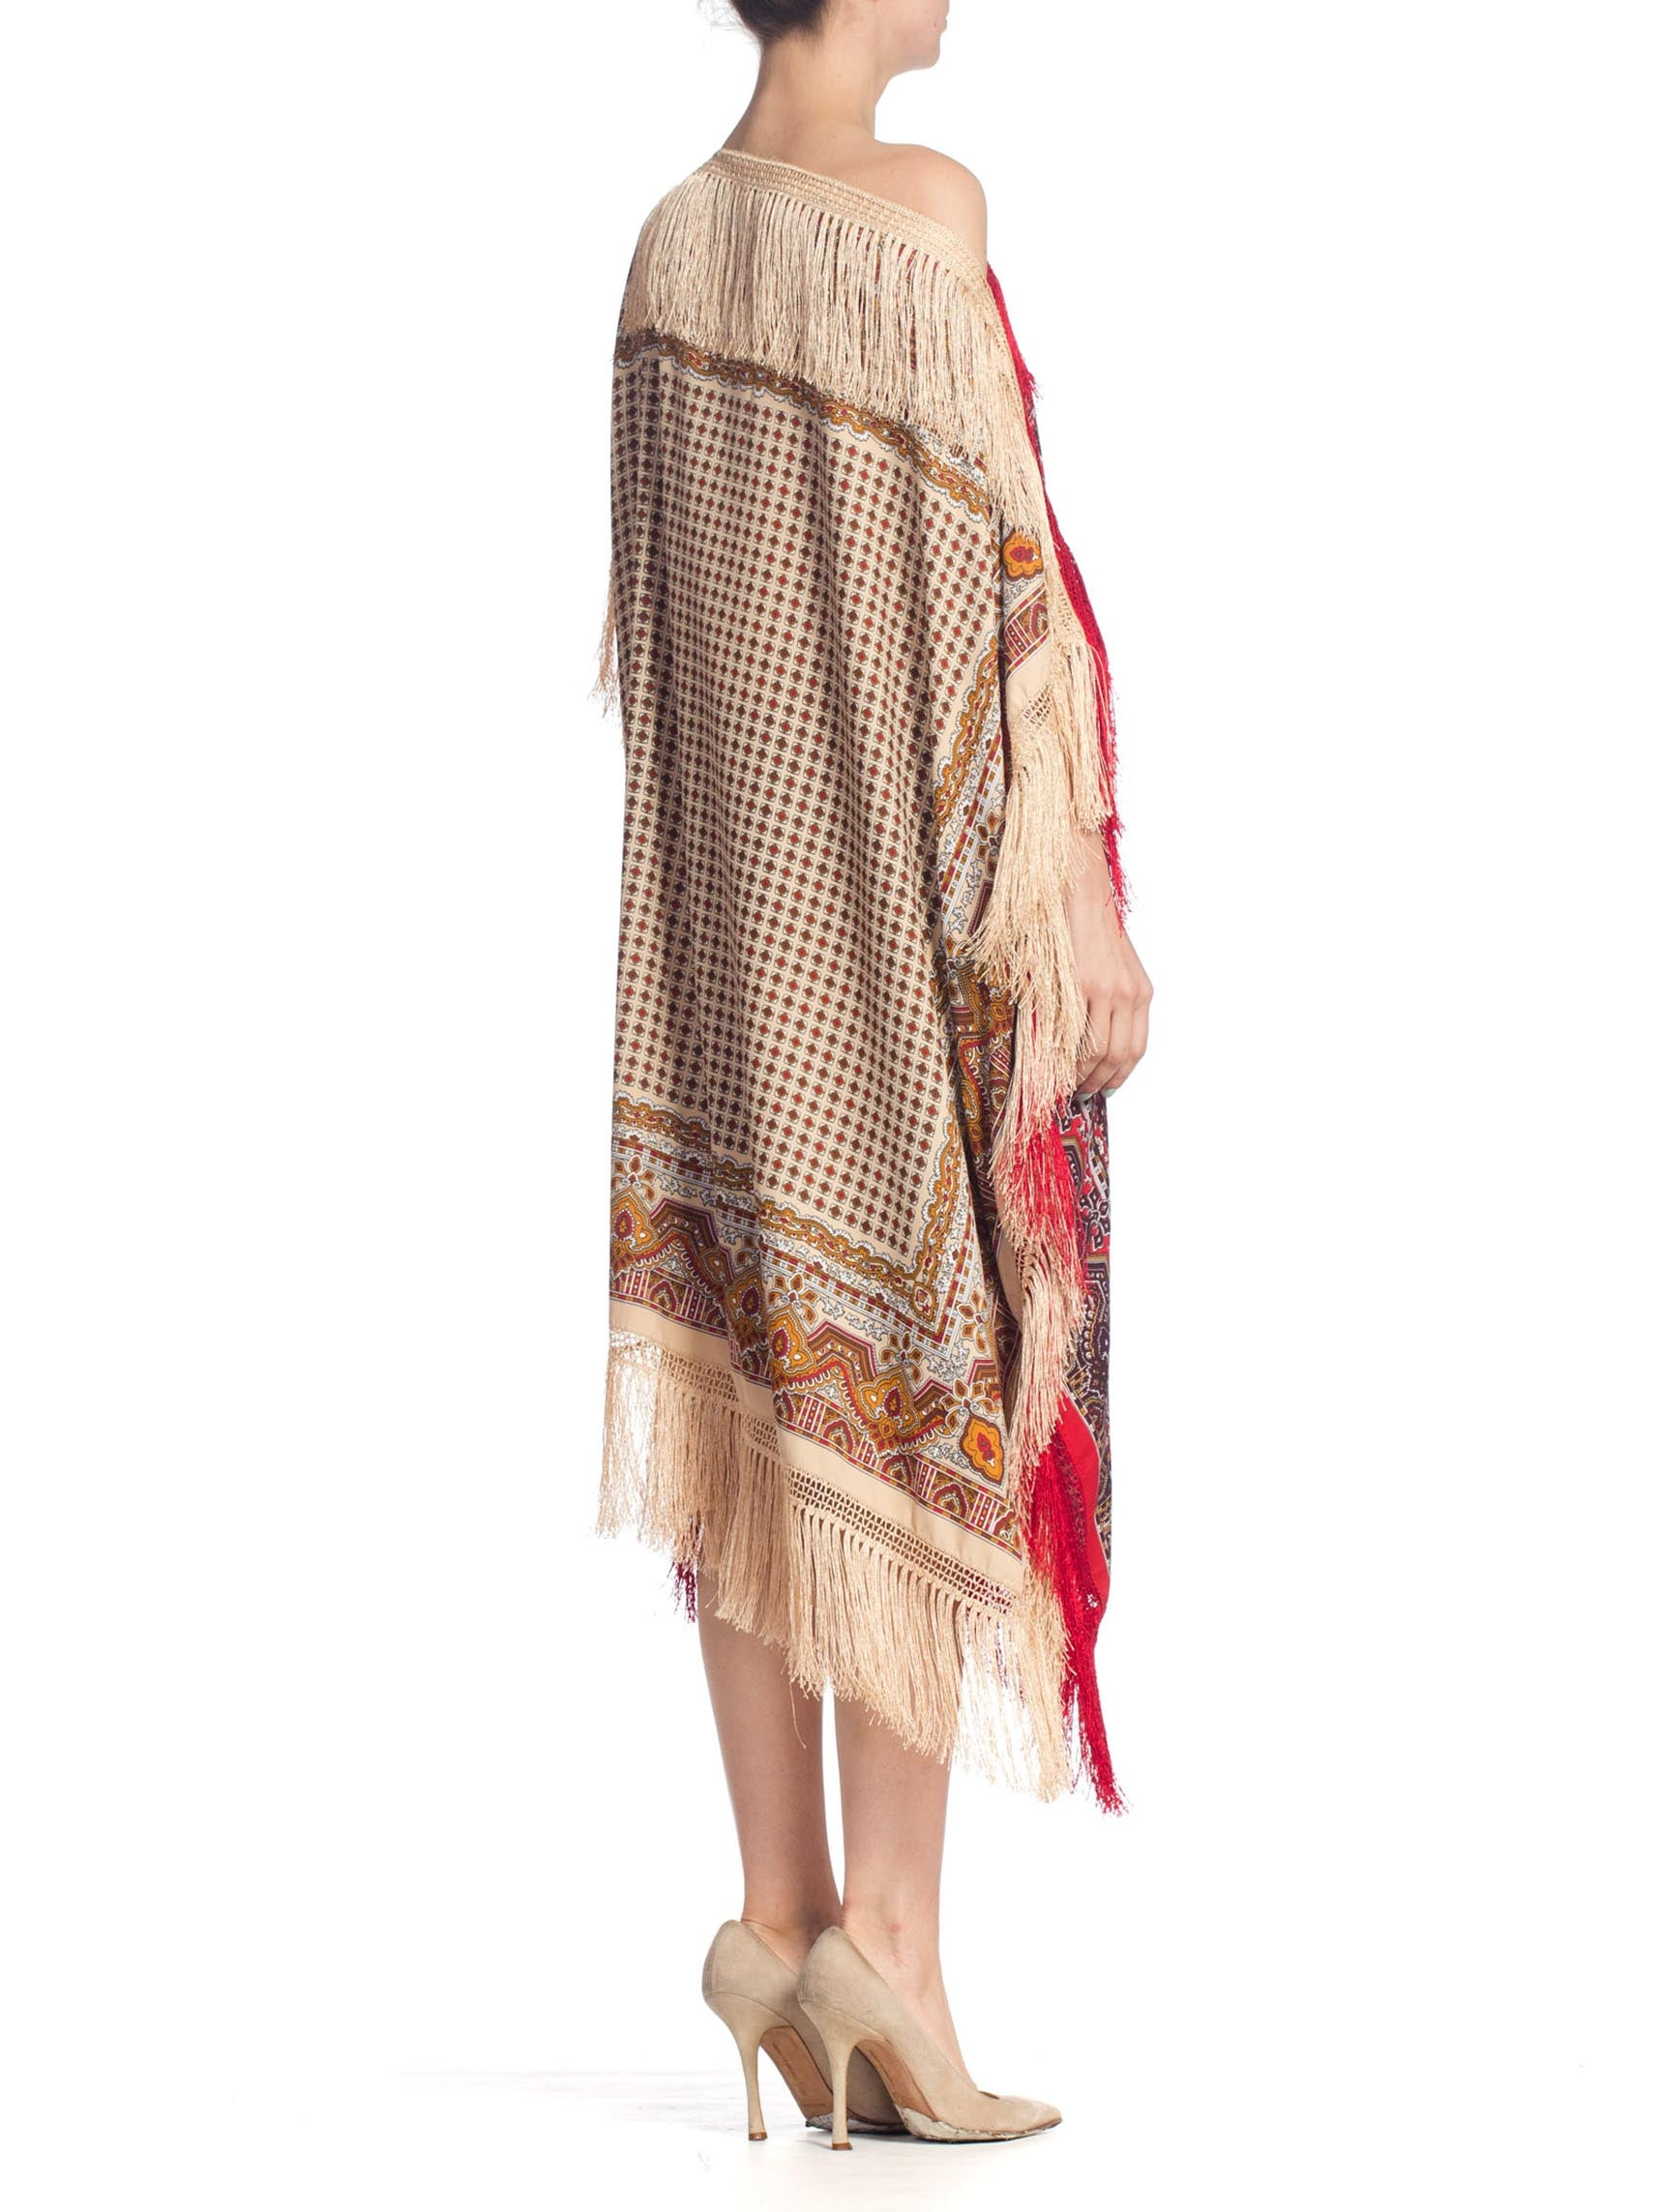 Morphew Collection Paisley Rayon & Silk Kaftan Tunic Dress Made From Vintage Scarves With Fringe